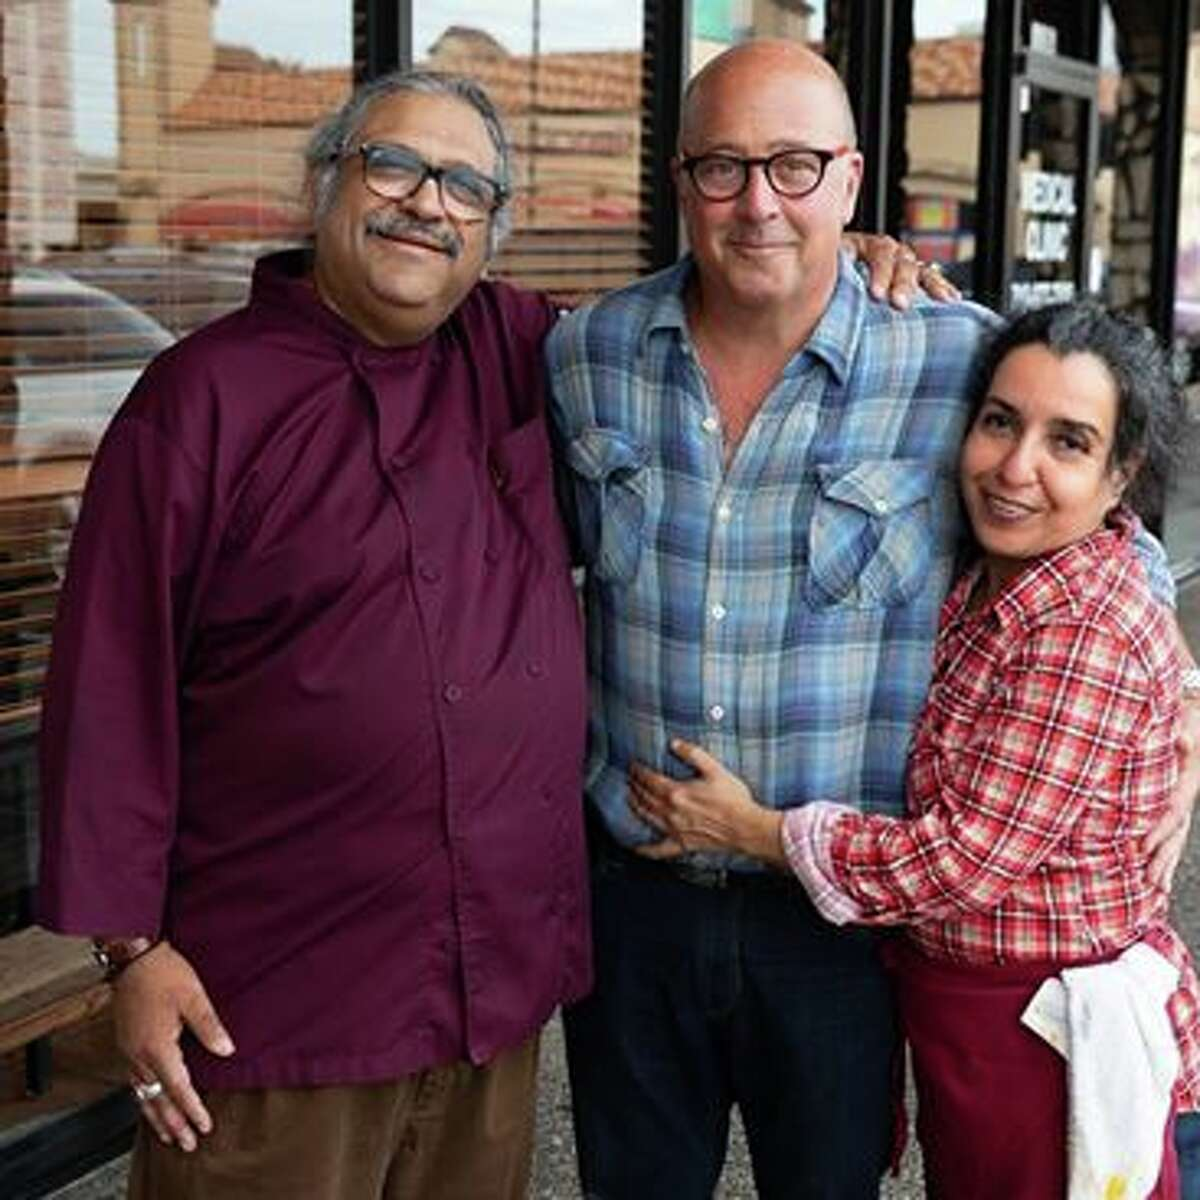 After Andrew Zimmern dined at Himalaya Restaurant Sunday afternoon, owner Kaiser Lashkari updated his Facebook photo with a shot including his wife Azra and the Travel Channel star.